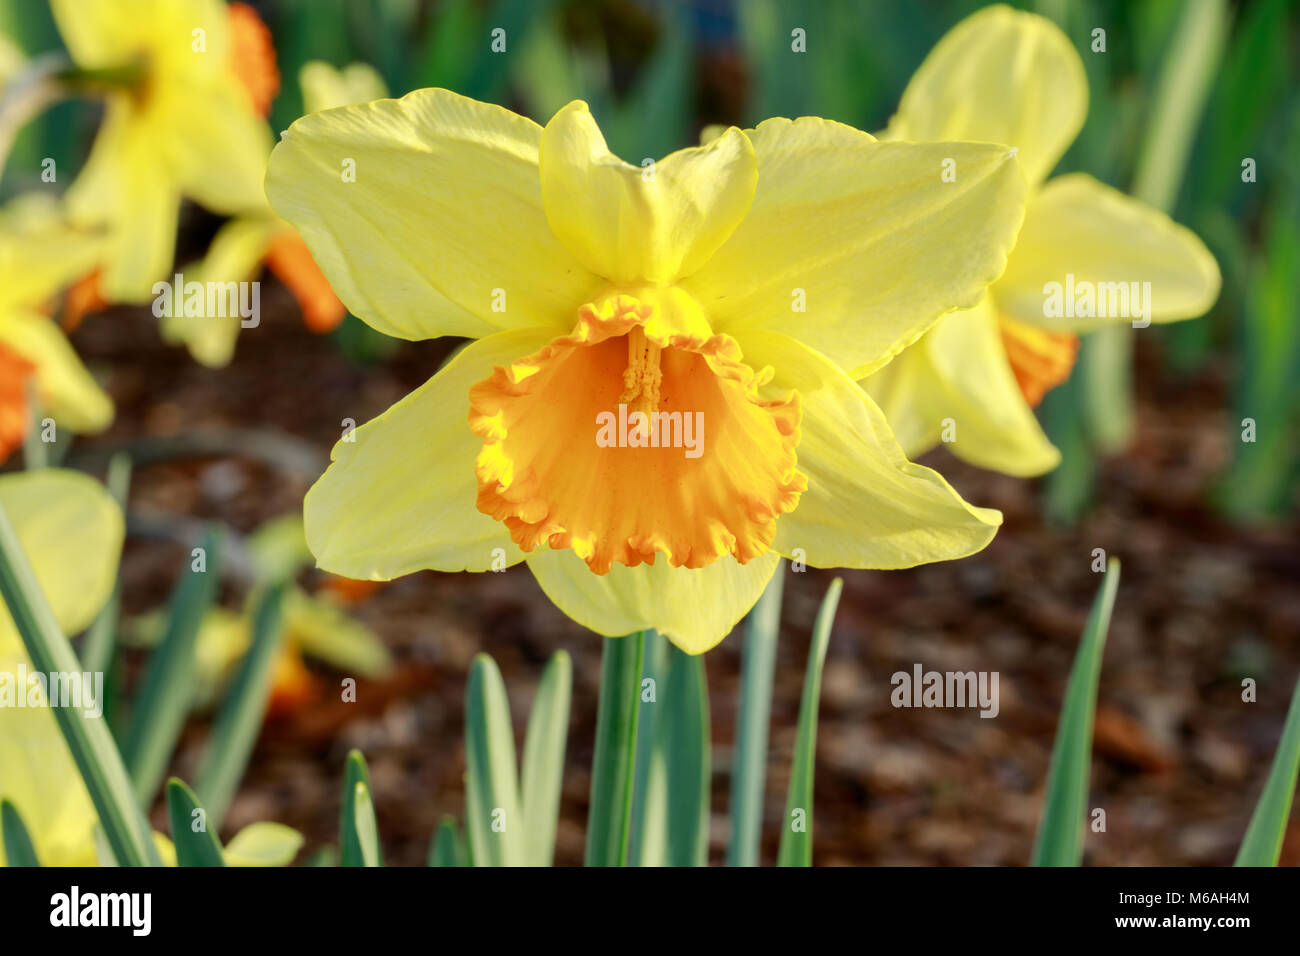 Daffodil (Narcissus sp.) in bloom. - Stock Image